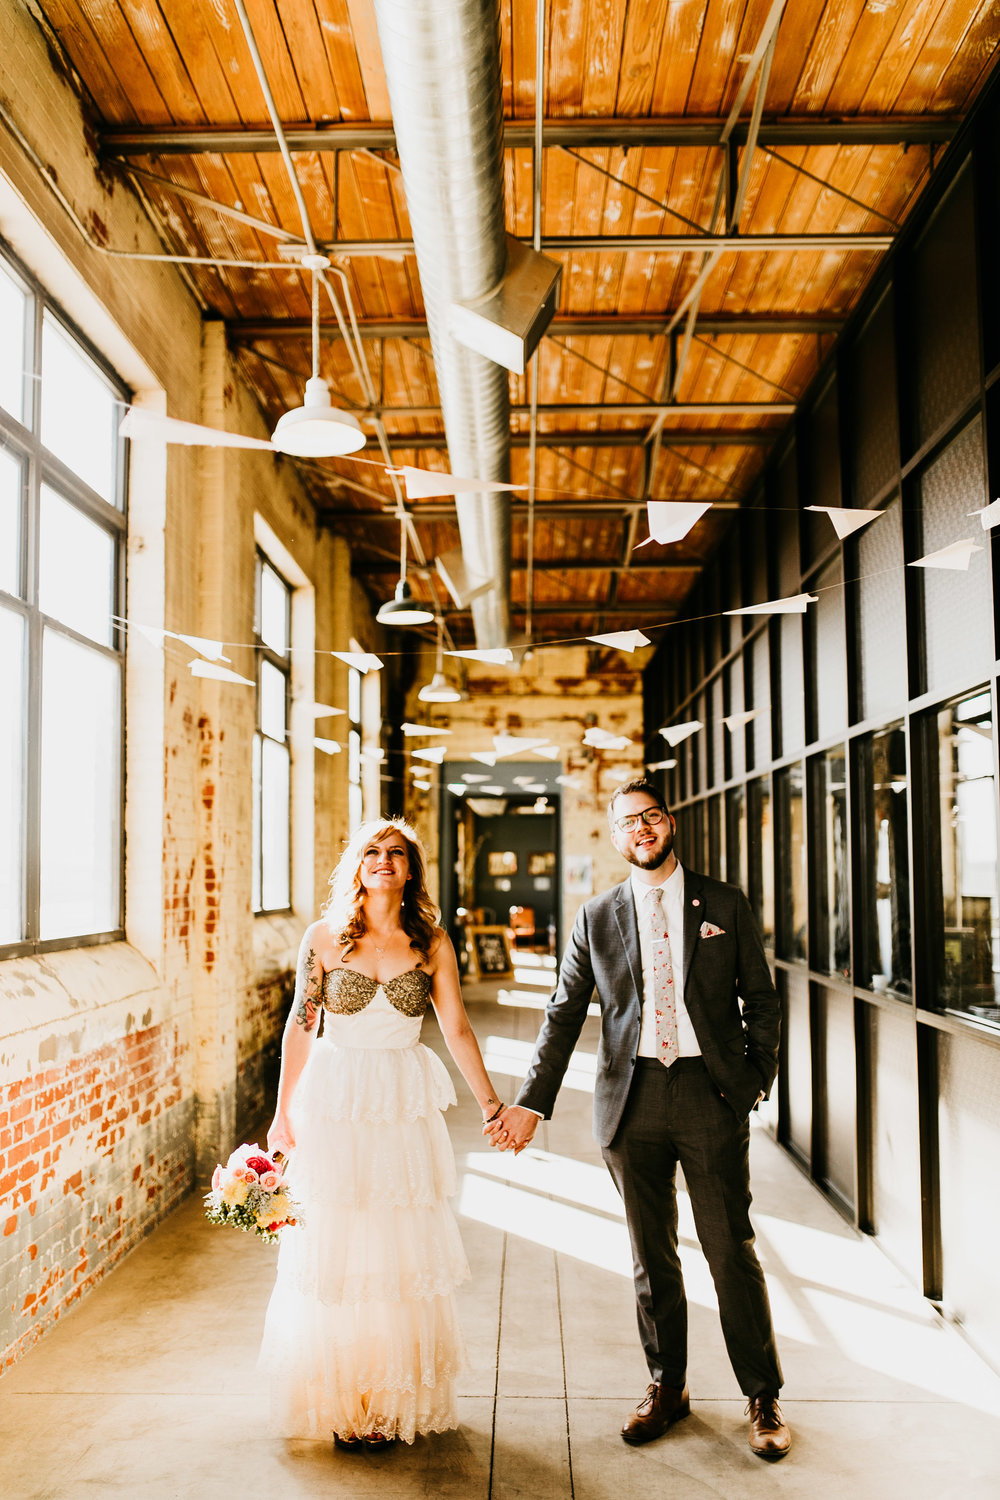 uprooted-traveler-paper-airplanes-traditional-wedding-vs-vegas.jpg